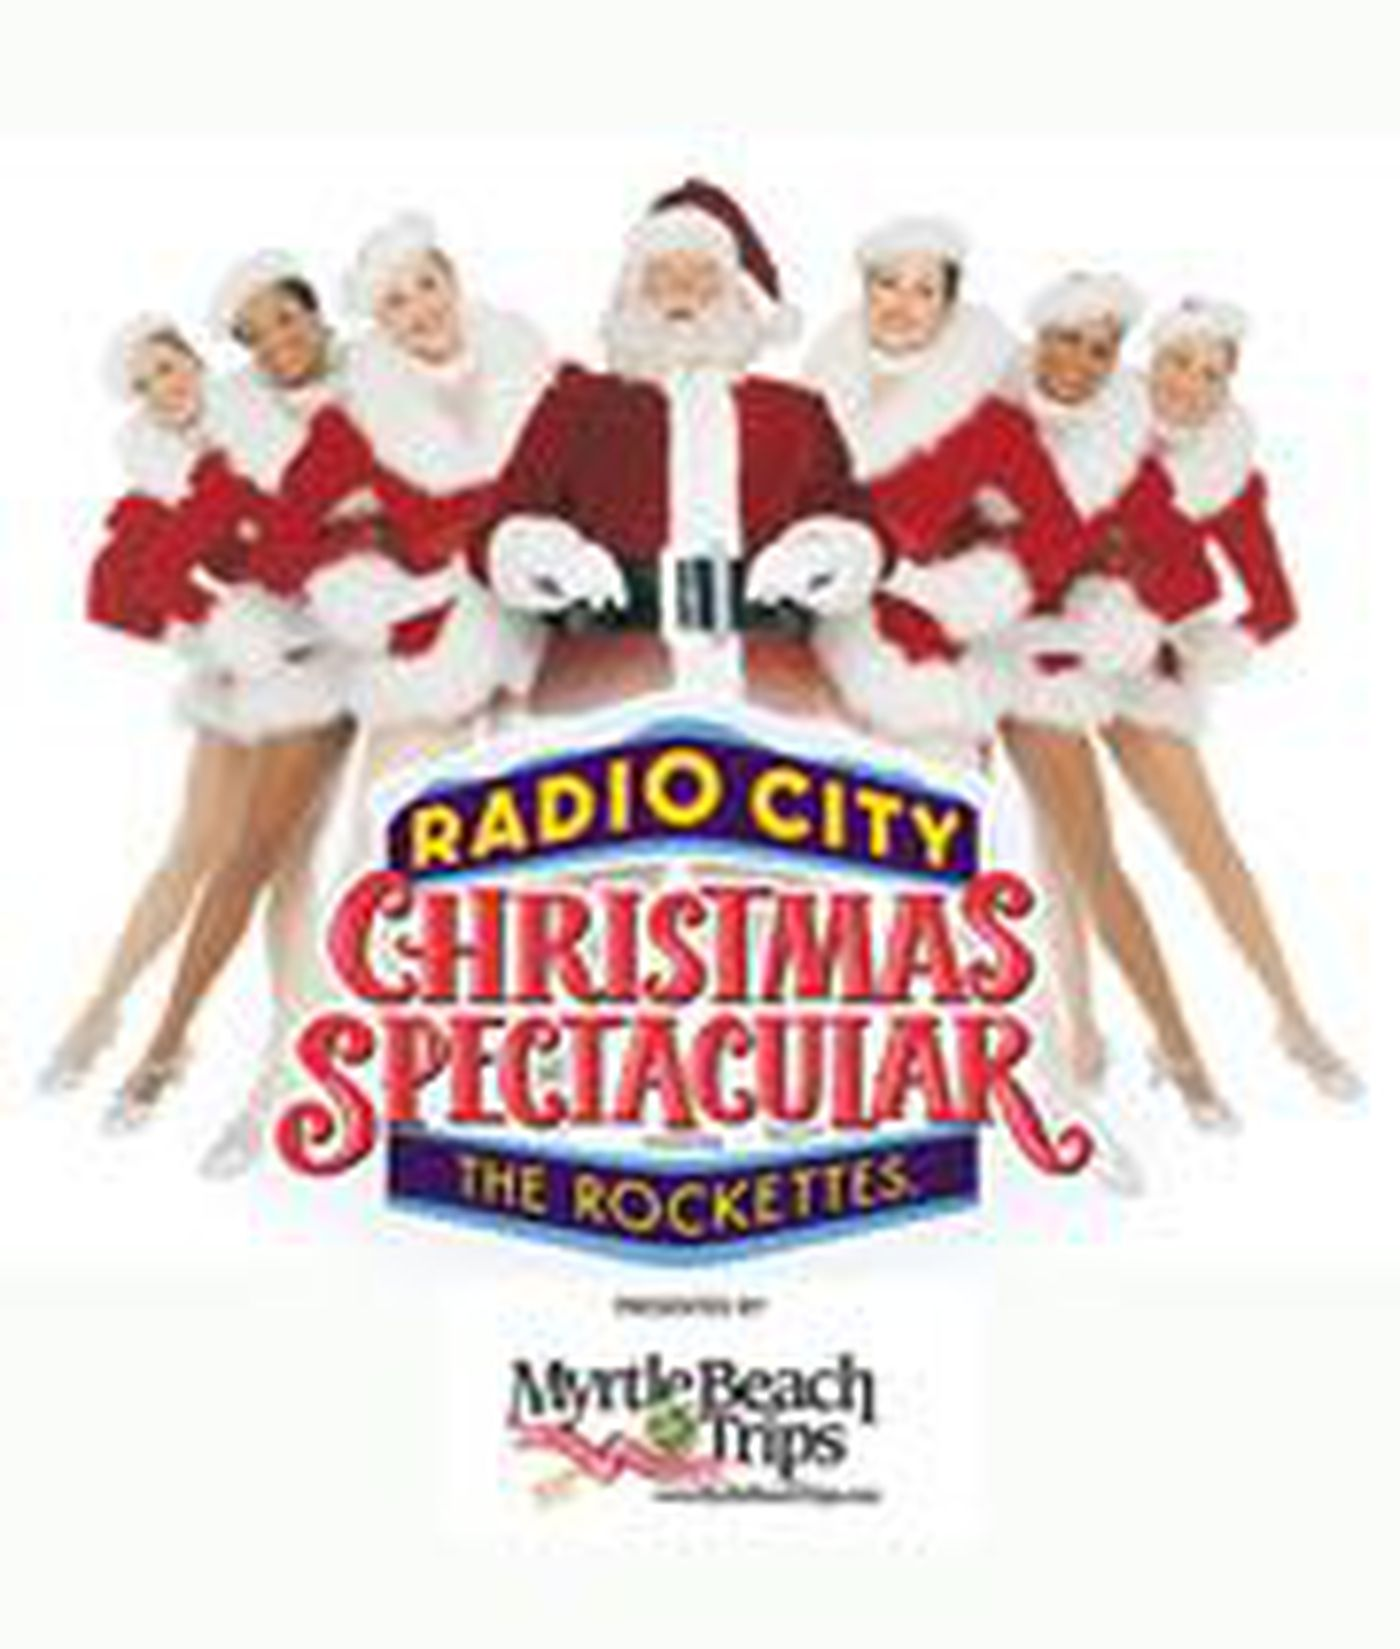 contest rules for the radio city christmas spectacular starring the rockettes ticket contest - Radio City Christmas Show Tickets